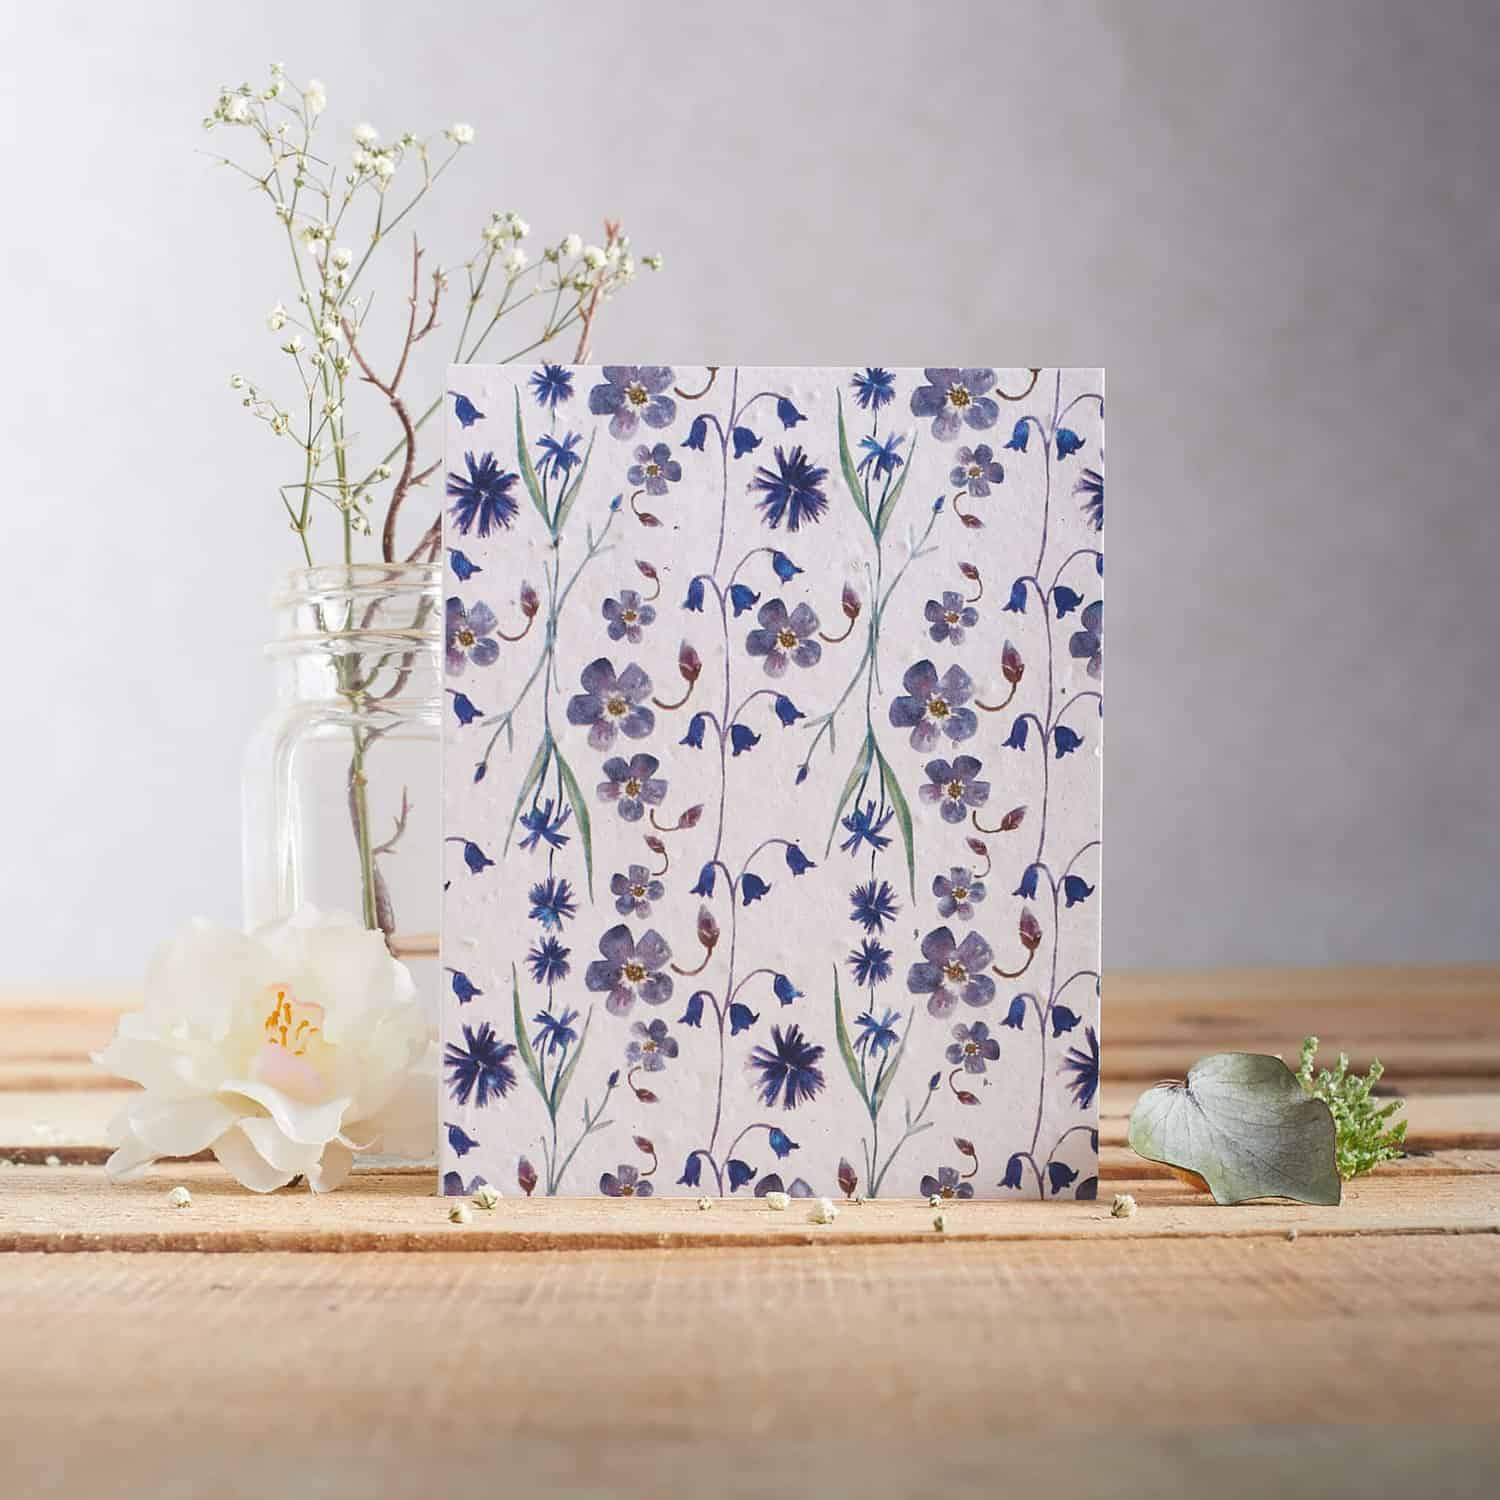 Hannah Marchant illustrates greetings card photographed in rustic setting with shallow depth of field